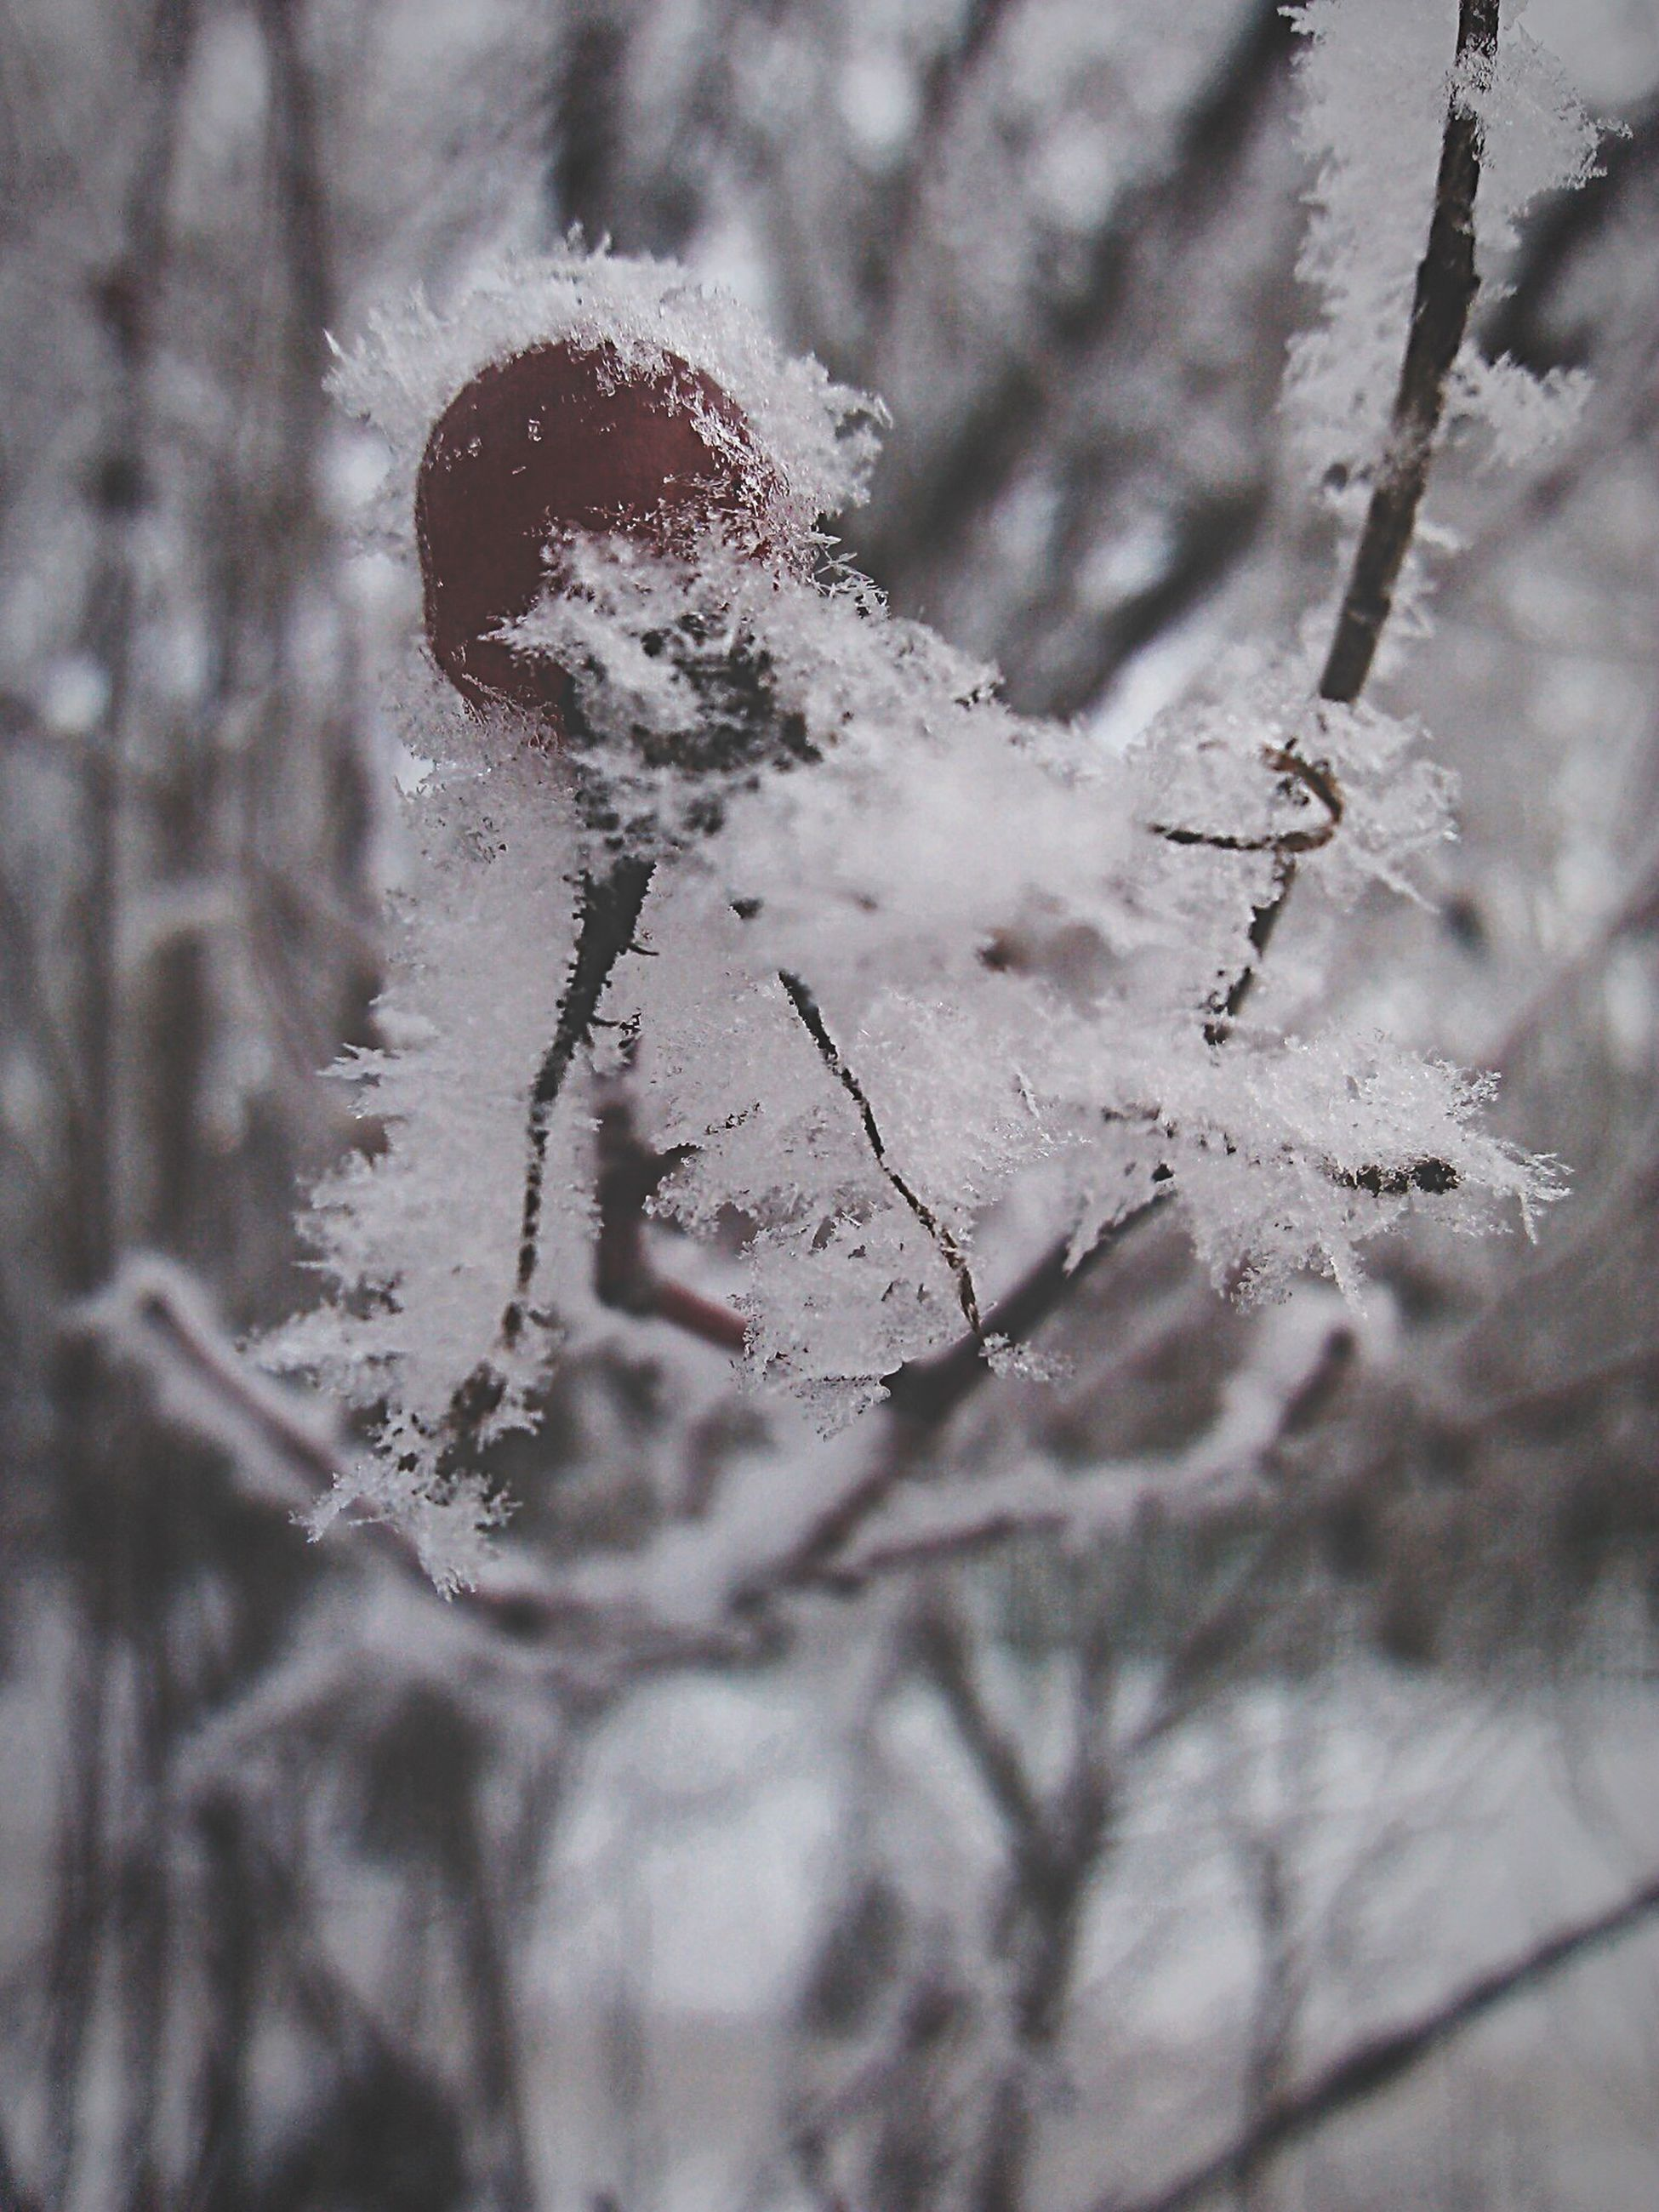 winter, cold temperature, focus on foreground, snow, close-up, nature, frozen, weather, season, selective focus, plant, day, dead plant, outdoors, dry, branch, tranquility, growth, tree, no people